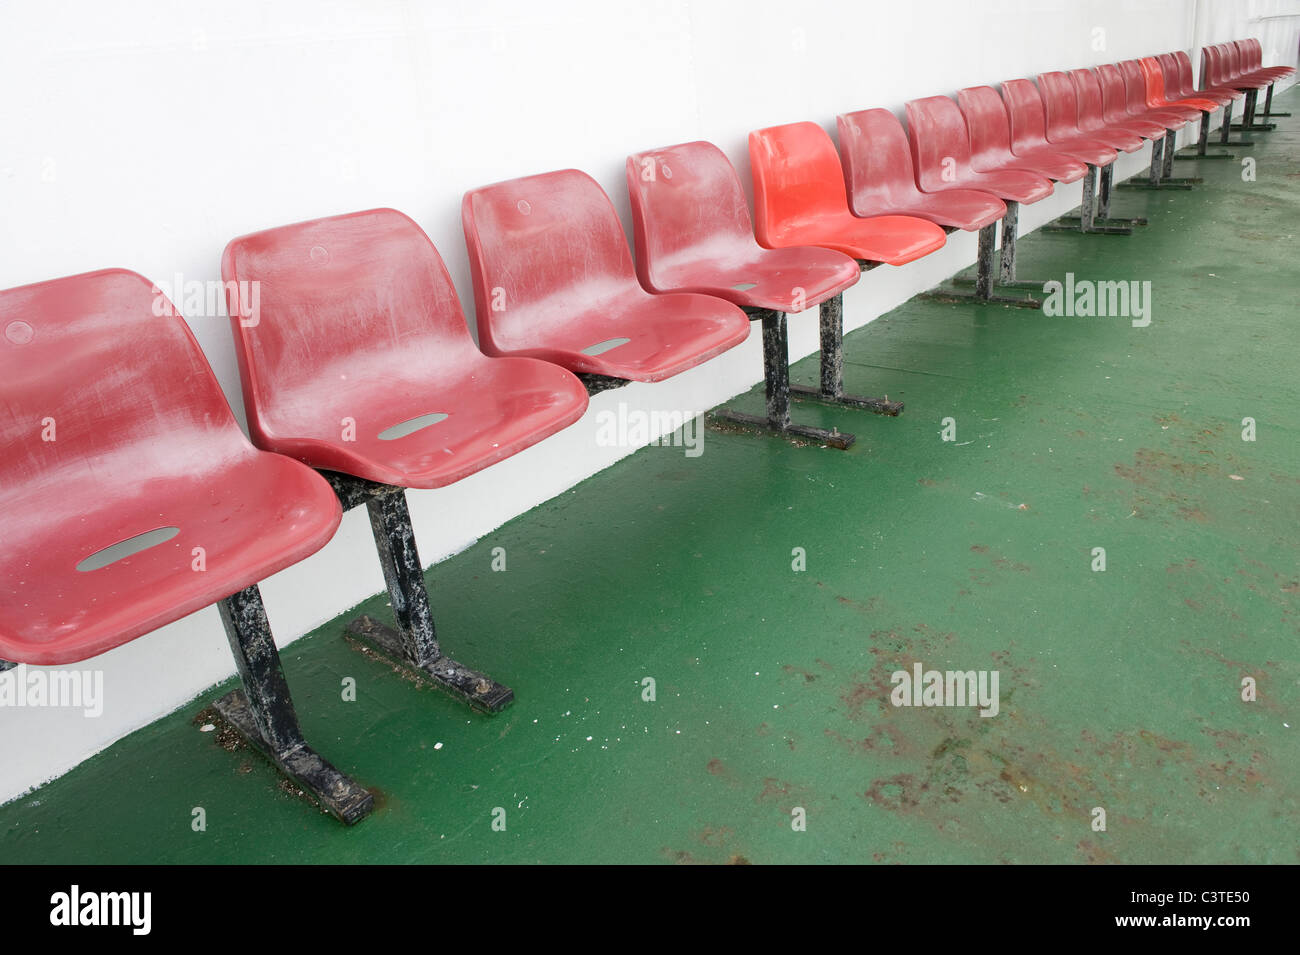 Rows of red seats on the deck of a ferry. Stock Photo